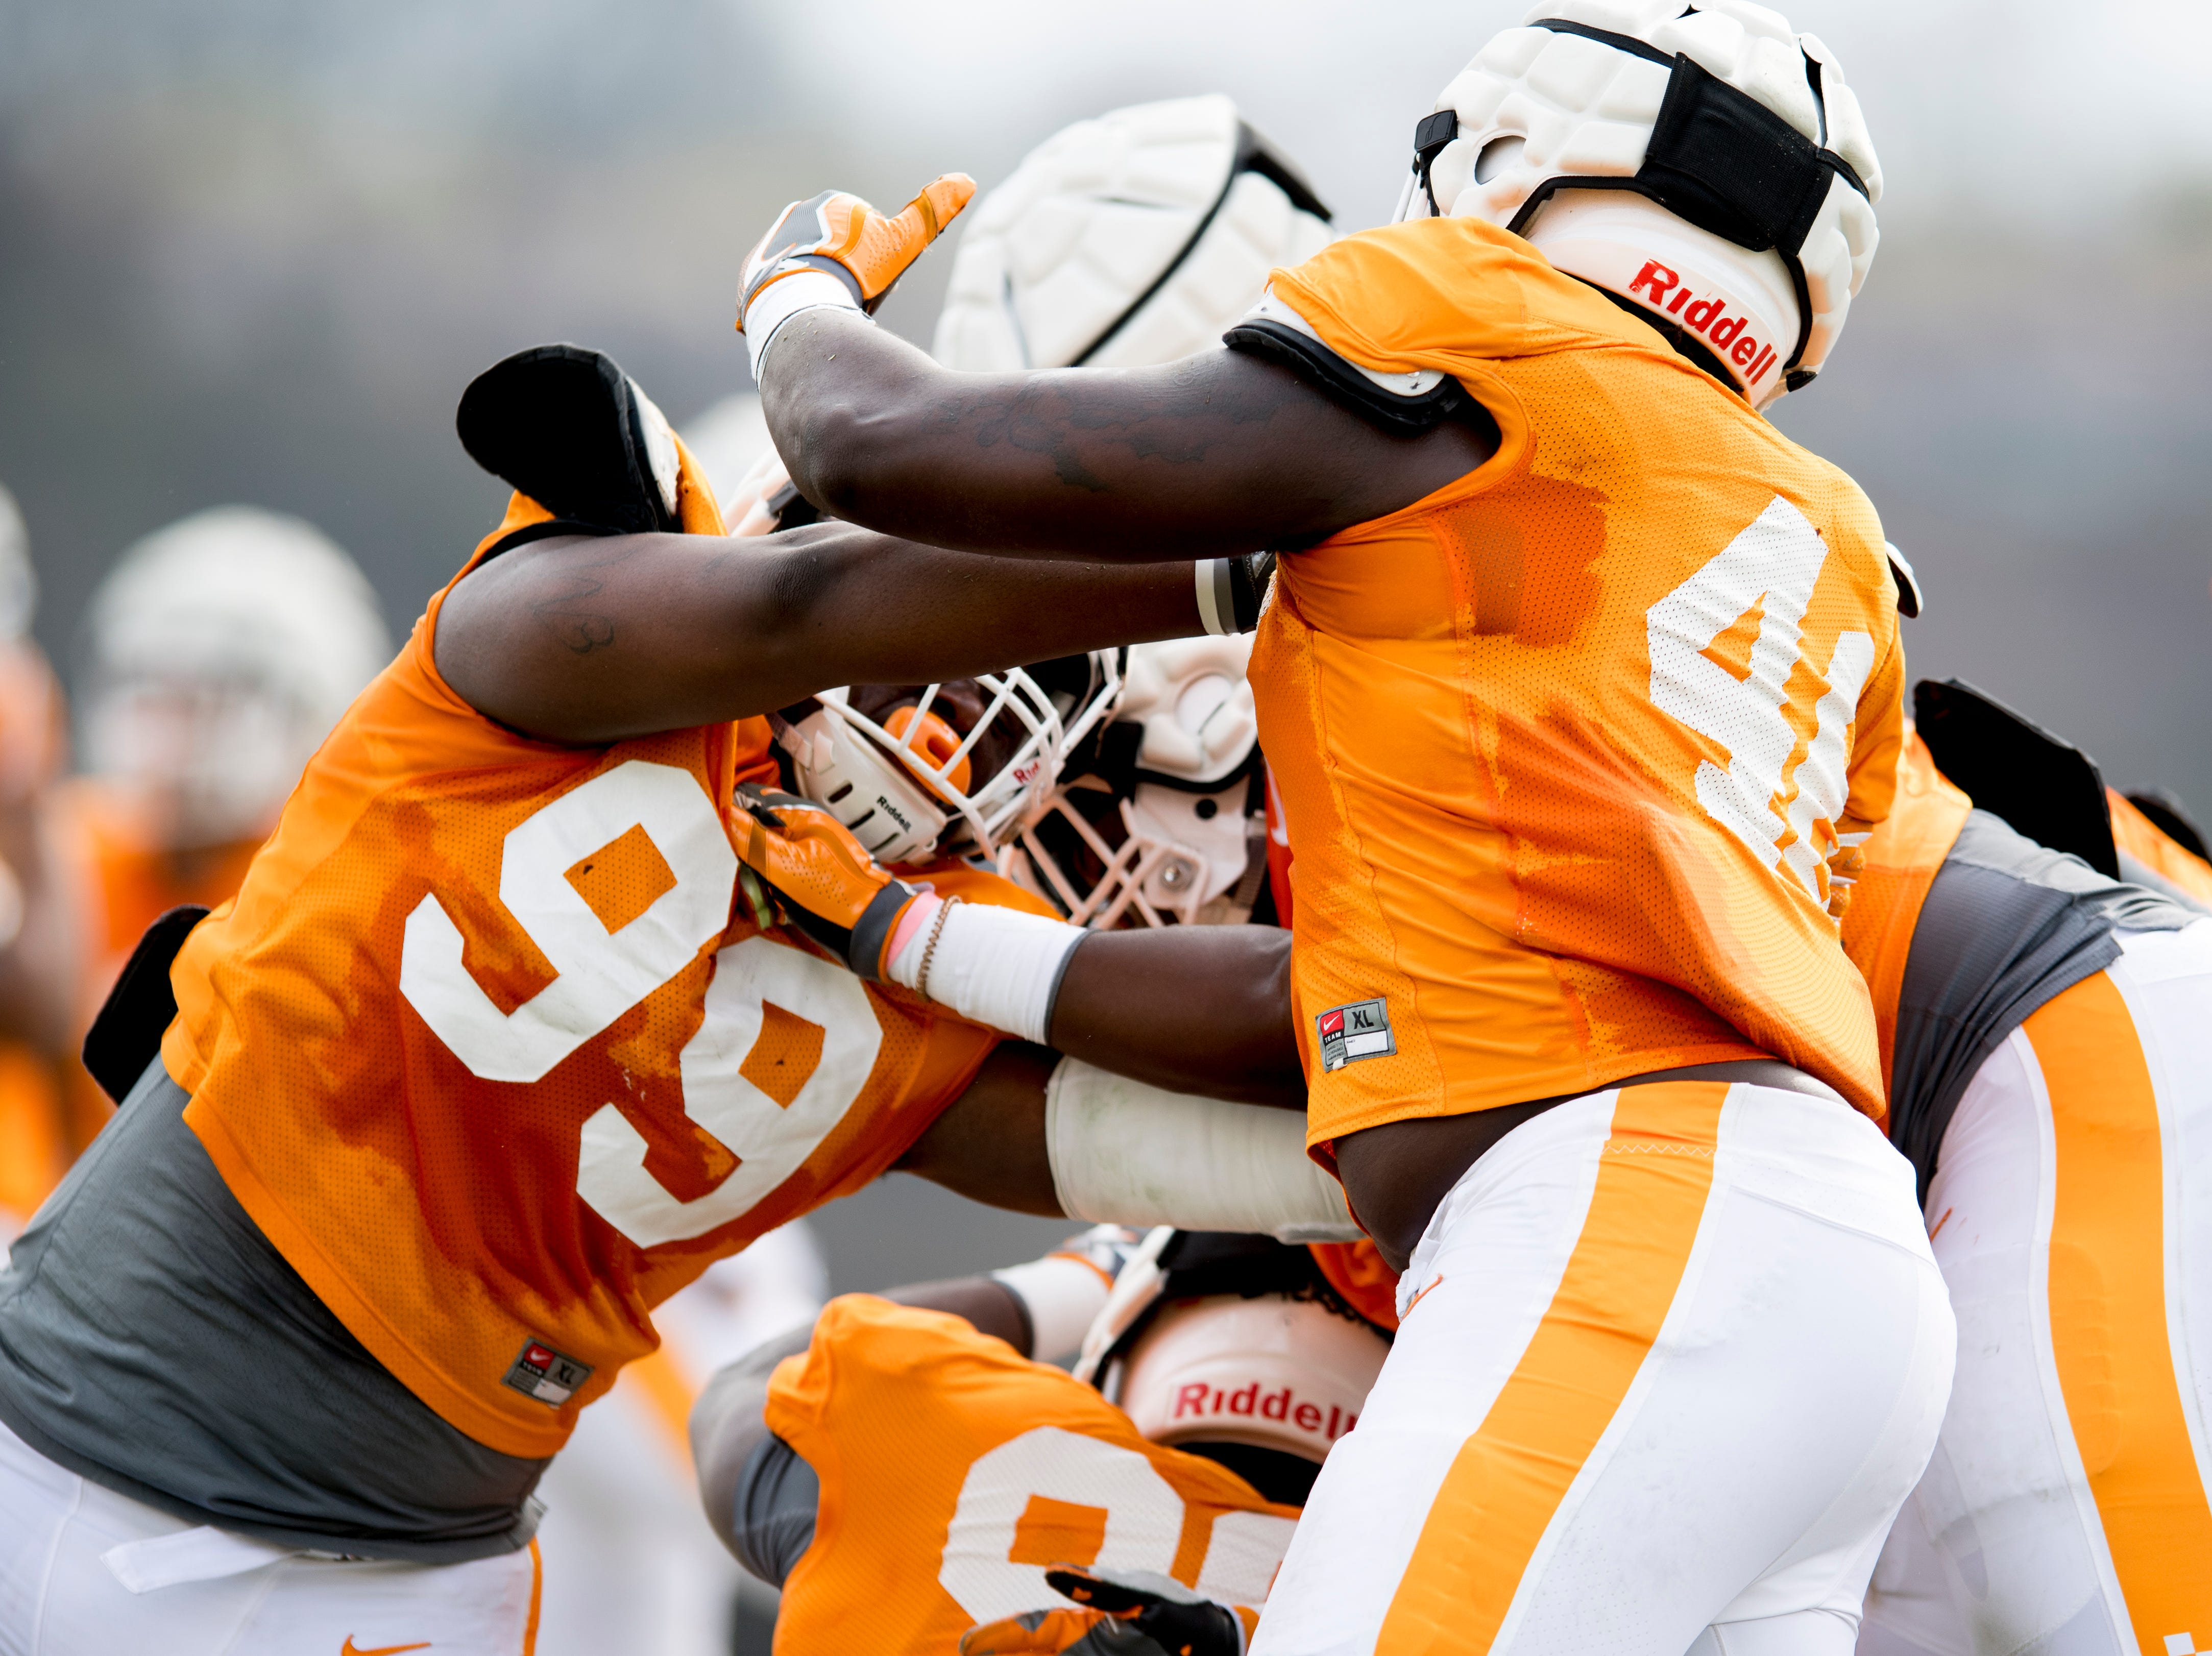 Tennessee defensive linemen John Mincey (99) and Kenneth George Jr. (41) drill together during Tennessee spring football practice at  Haslam Field in Knoxville, Tennessee on Wednesday, March 13, 2019.